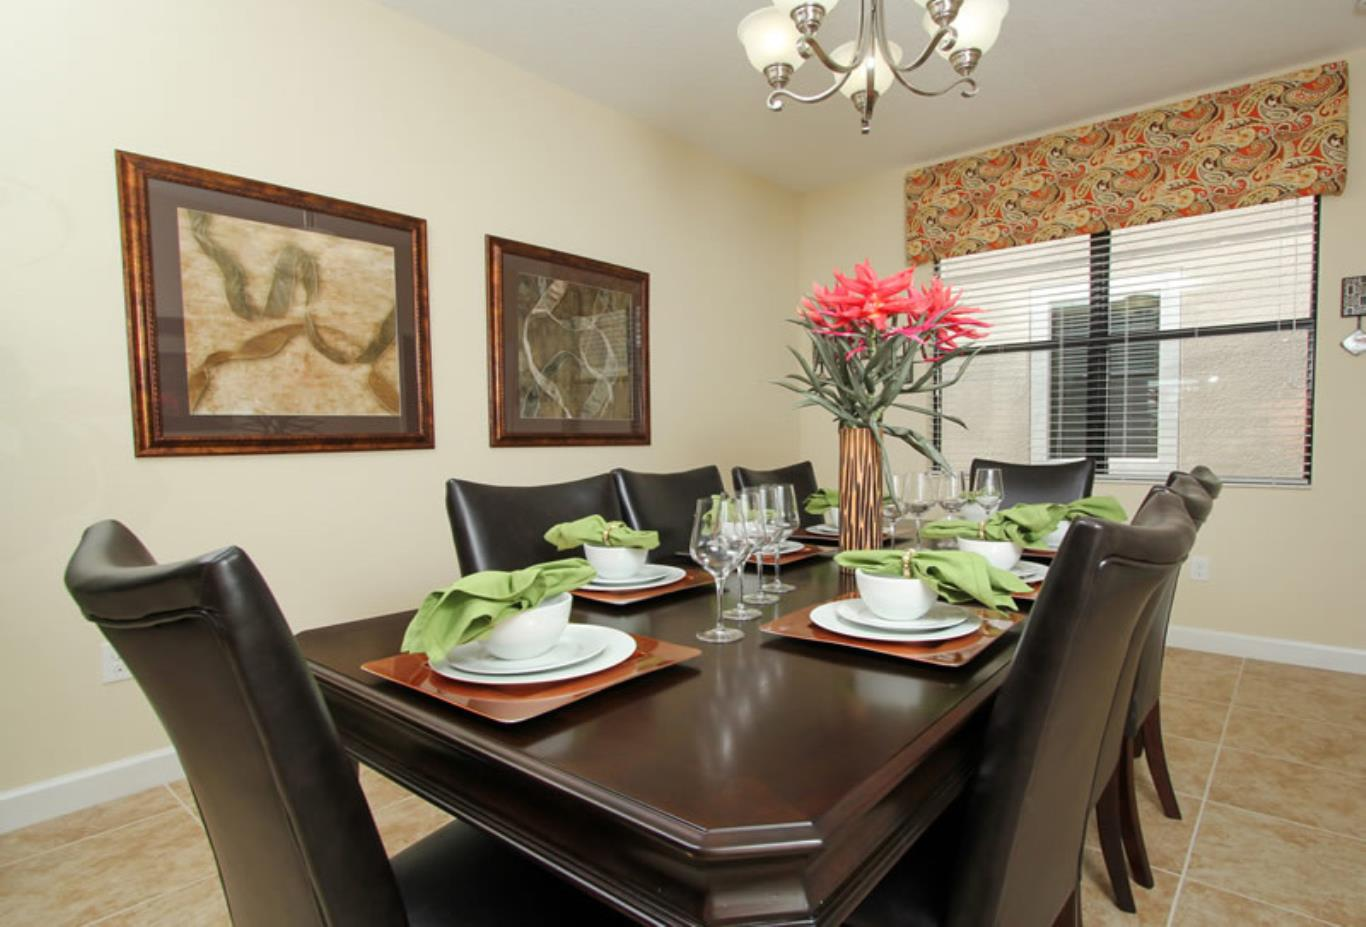 4 Bedroon Home Dining Room